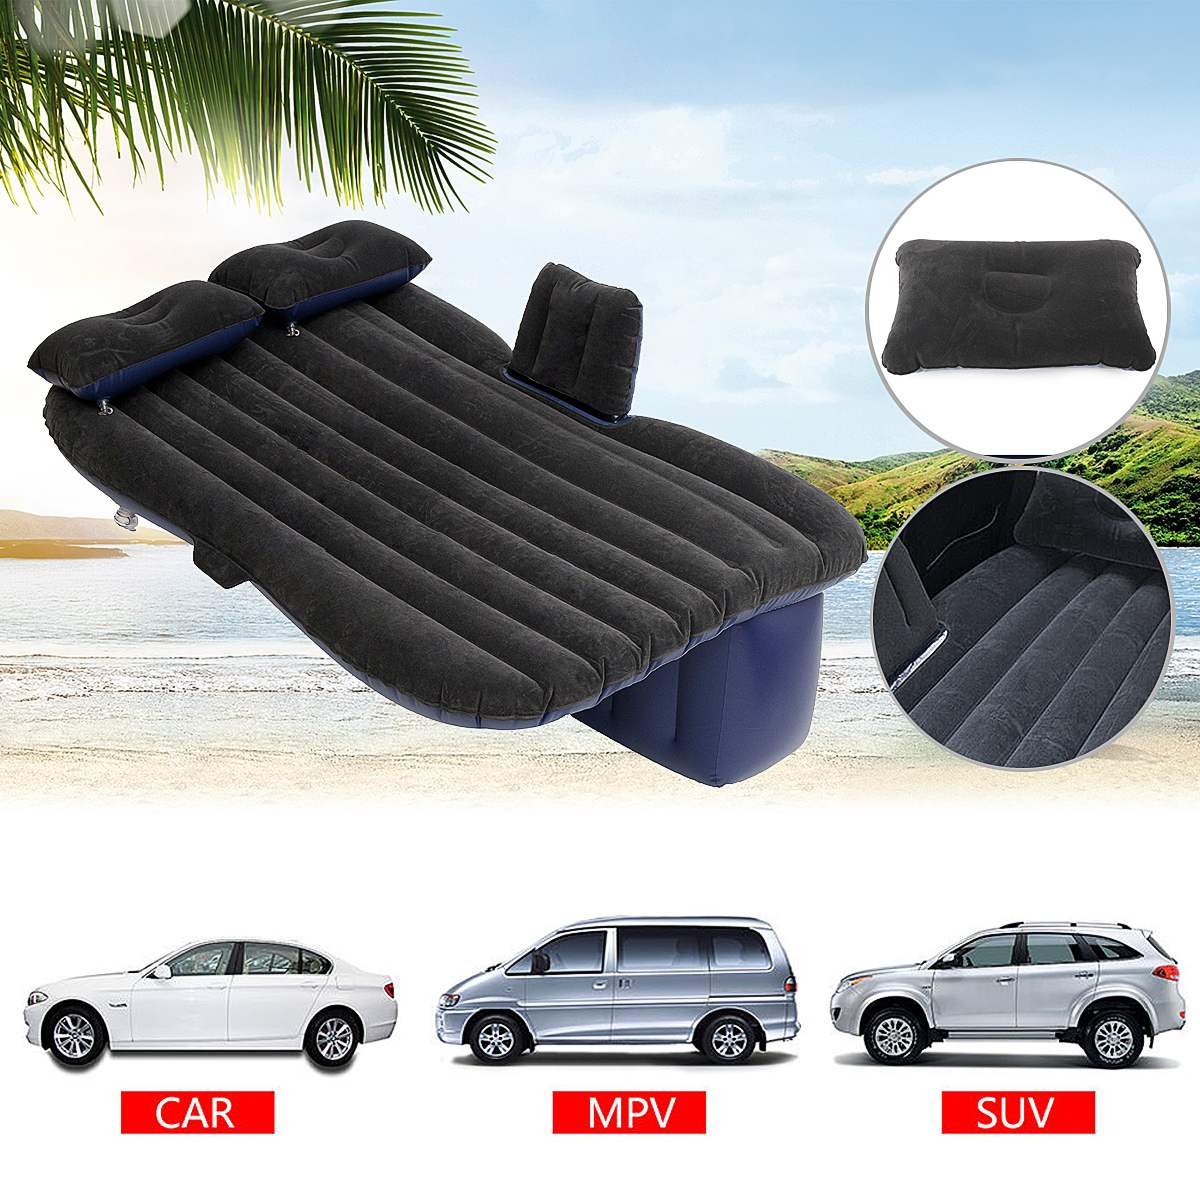 Good Quality Flocking Cloth Car Back Seat Cover Car Air Mattress Travel Bed Inflatable Mattress Air Bed Inflatable Car Bed tpu car air bed inflatable car air mattress travel bed inflatable camping bed folding bed